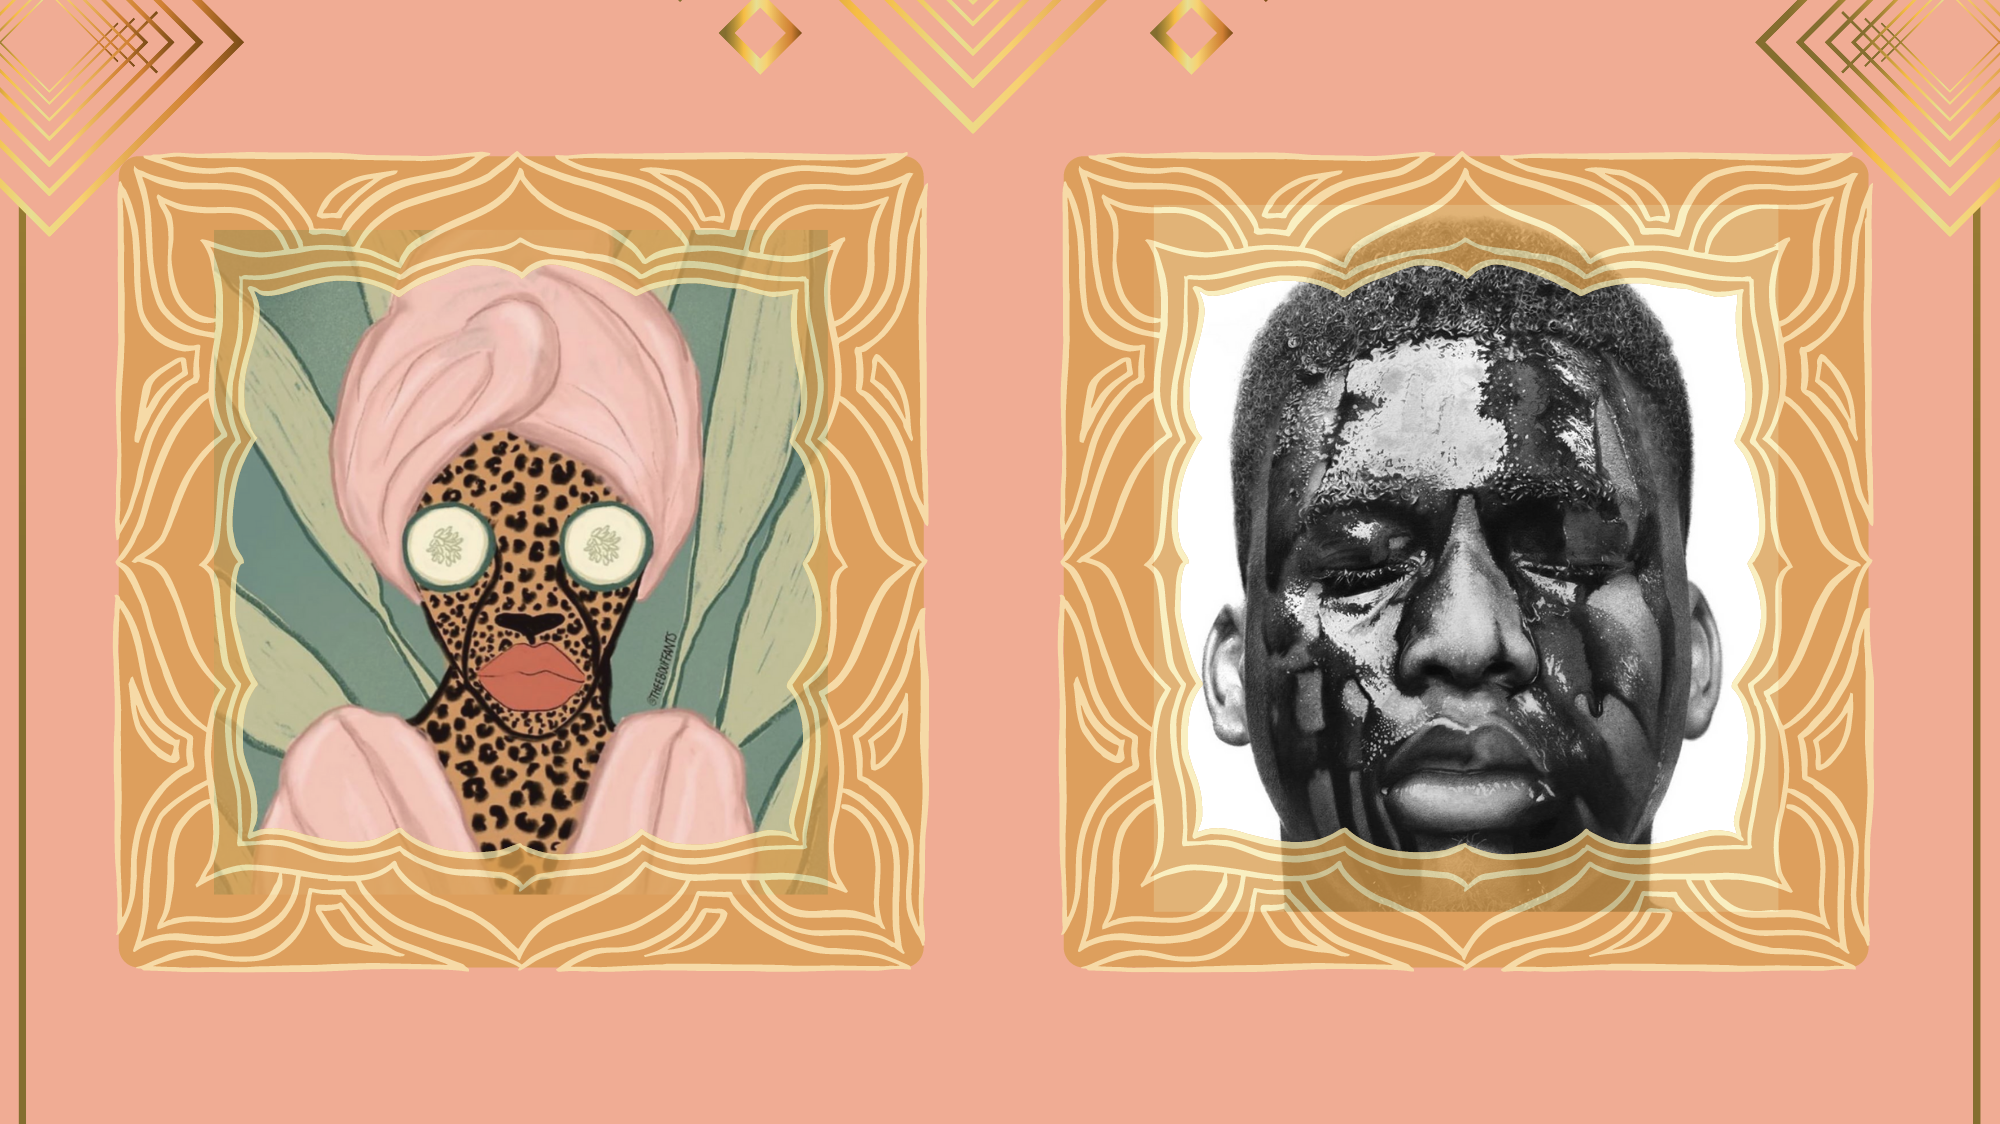 Side-by-side images of artwork by Kendra Dandy and Arinze Stanley